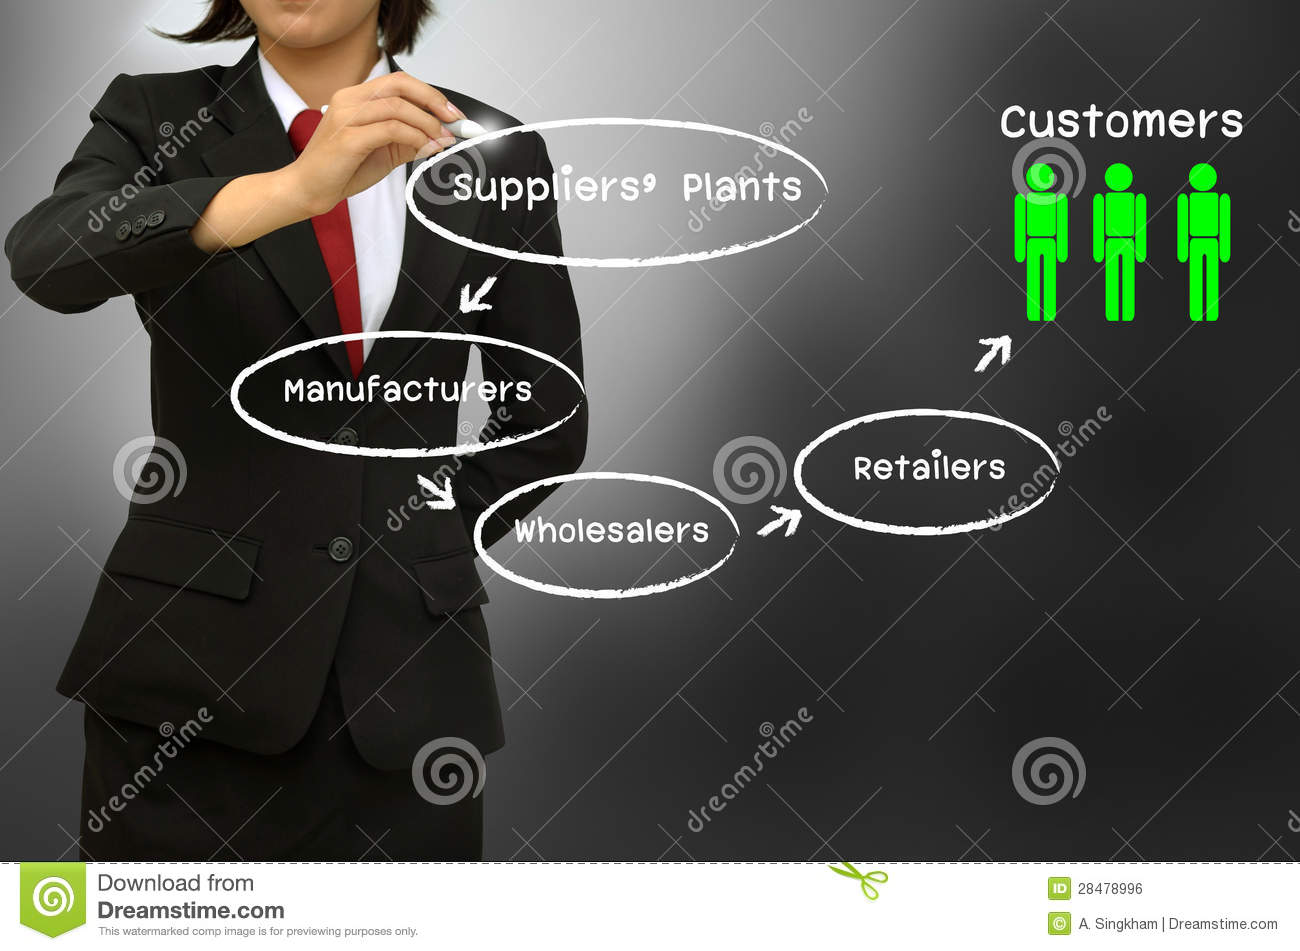 hight resolution of cloud computing in supply chain supply chain and channel of distribution diagram business woman writing the supply chain and channel